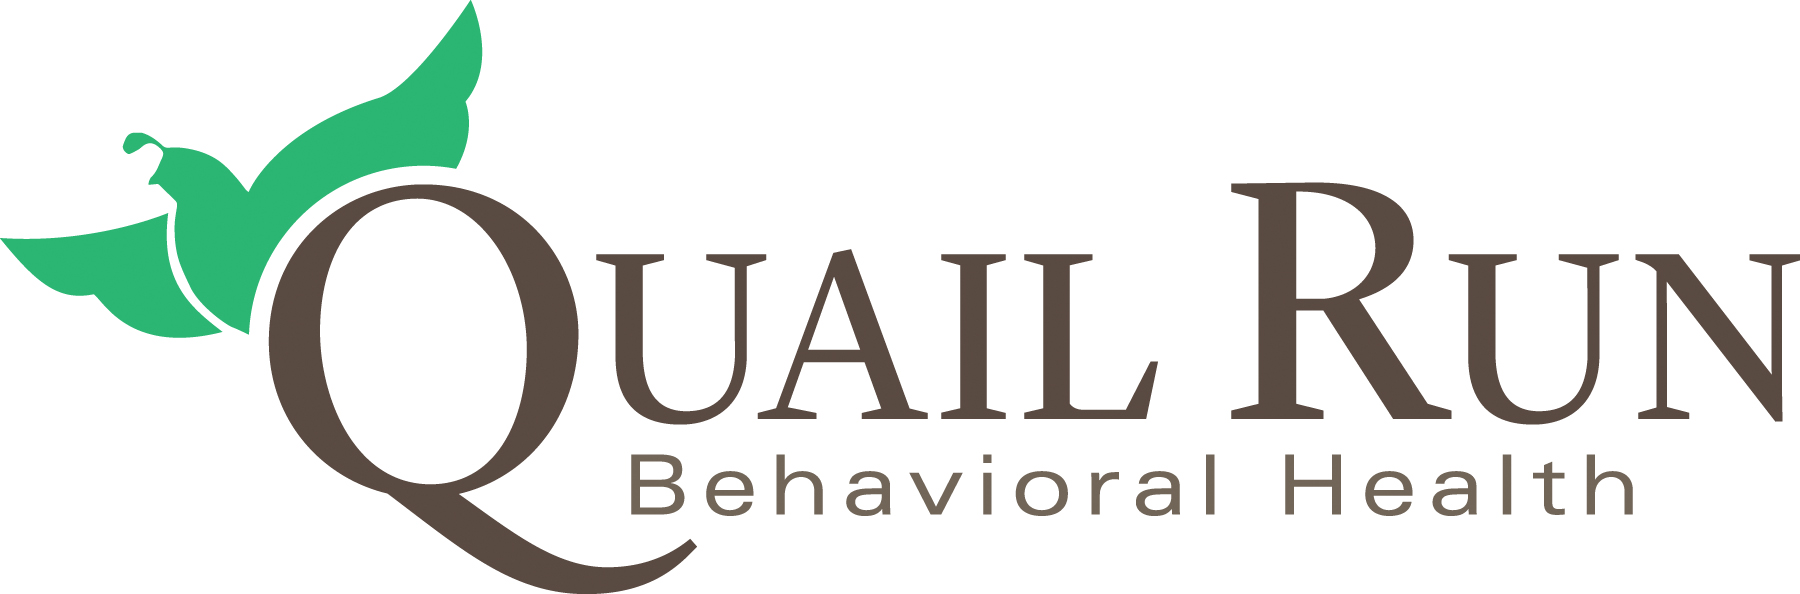 Quail run behavioral health logo